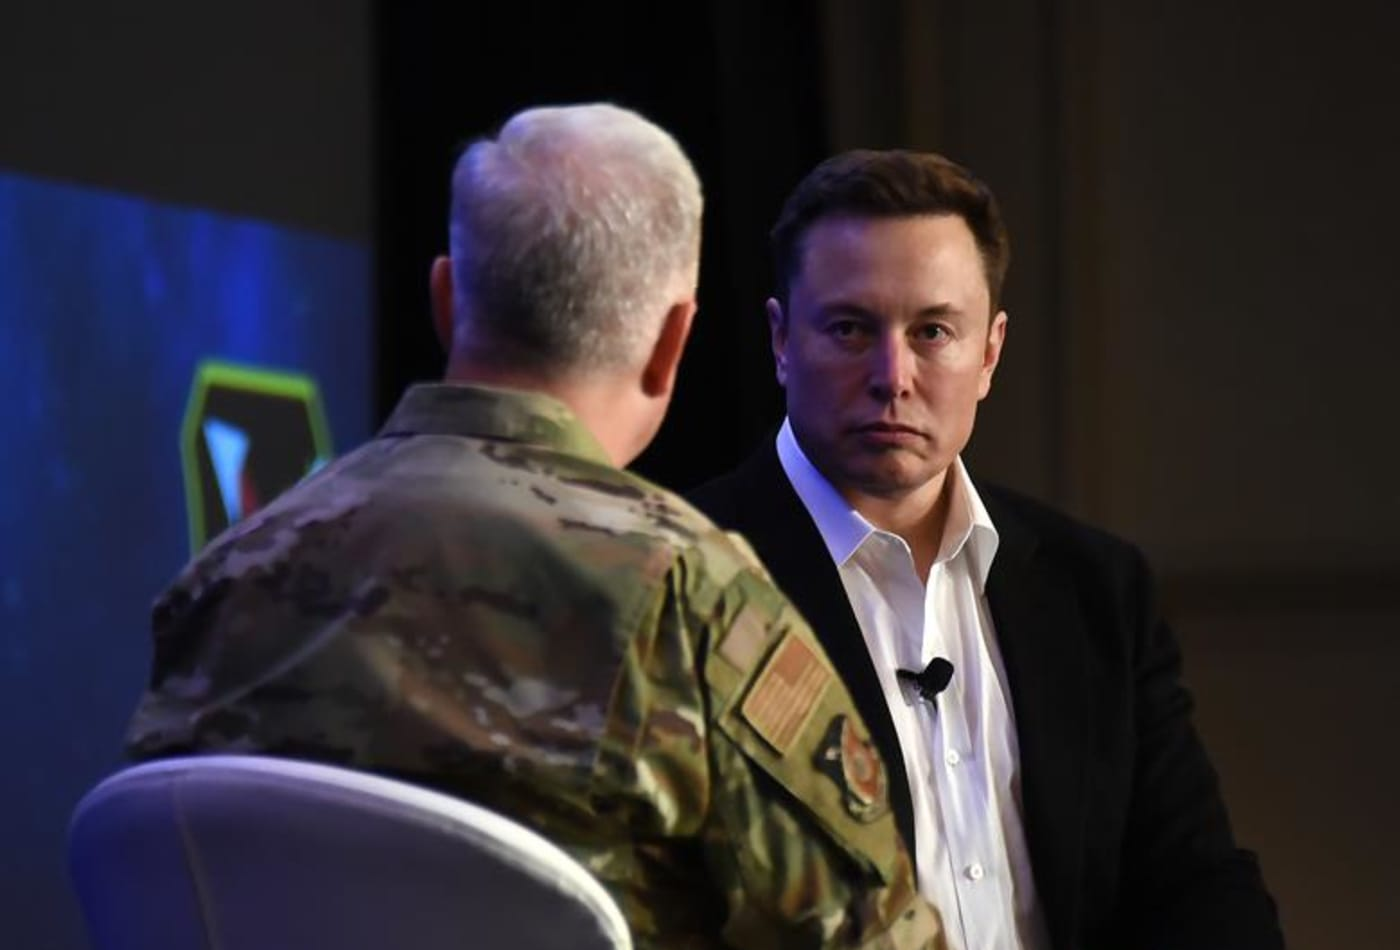 Elon Musk tells a room full of Air Force pilots: 'The fighter jet era has passed'